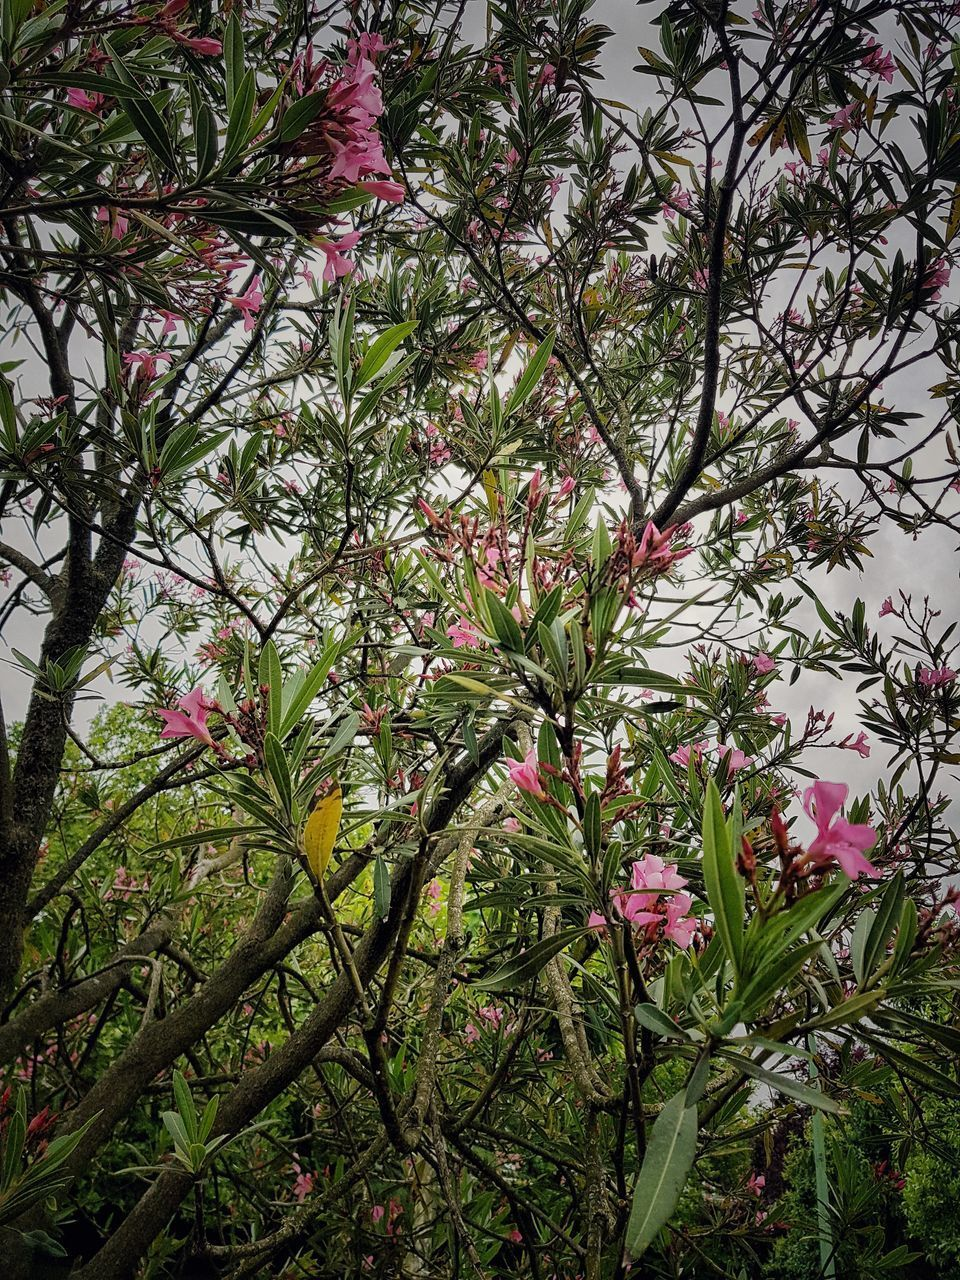 CLOSE-UP OF PINK FLOWERING PLANT AGAINST TREE